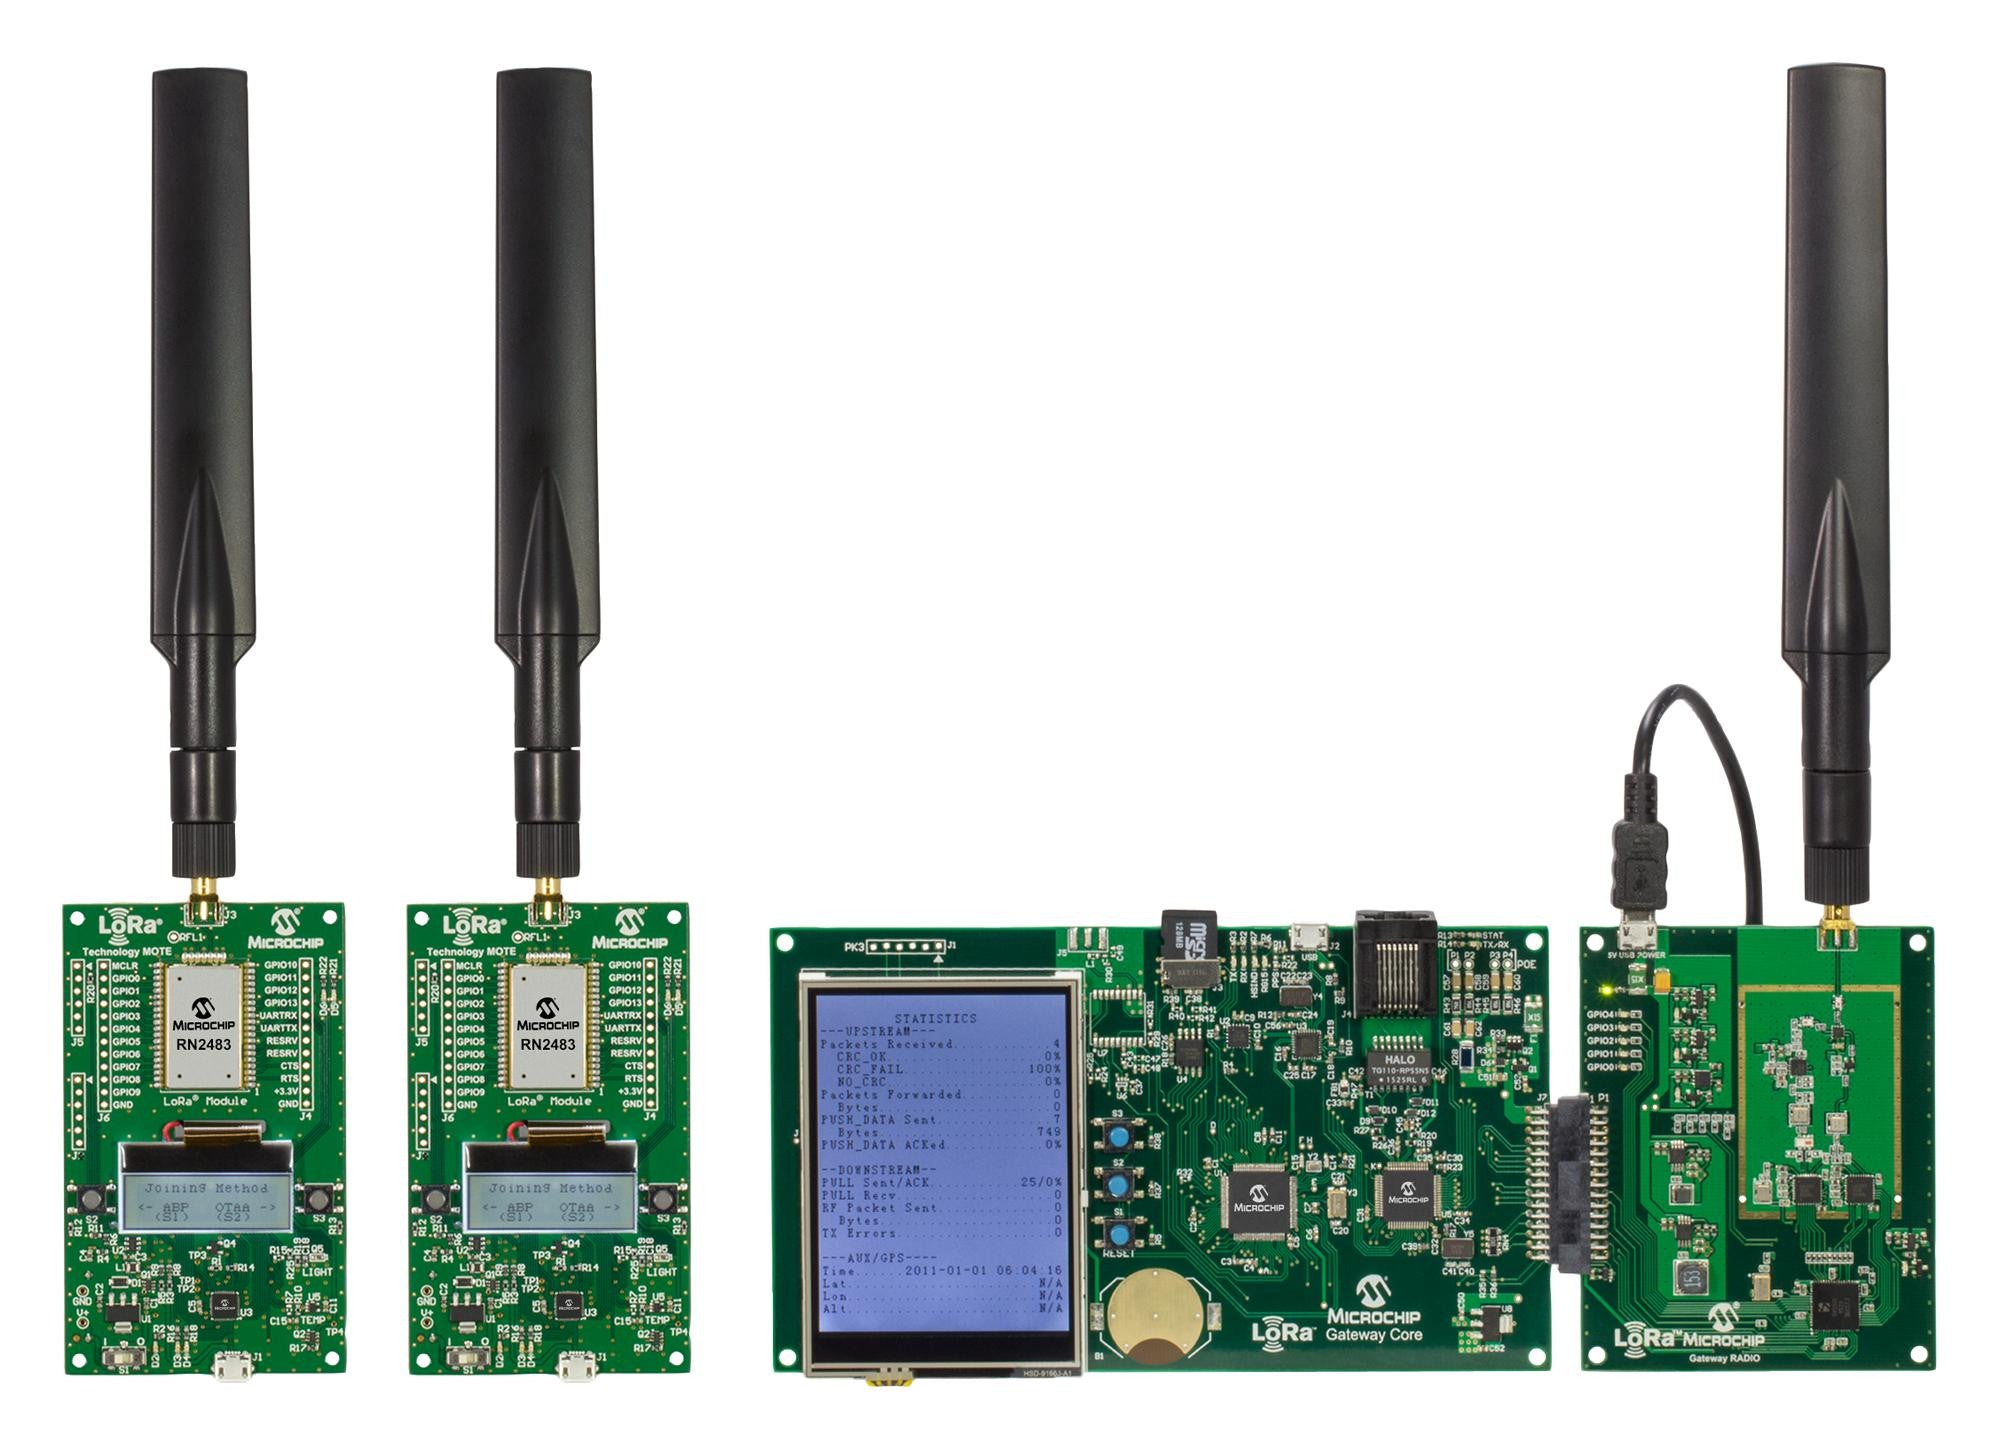 MICROCHIP DV164140-1 LoRa Network Evaluation Kit, Networking, 868MHz, Full  Band Capture Radios, RN2483